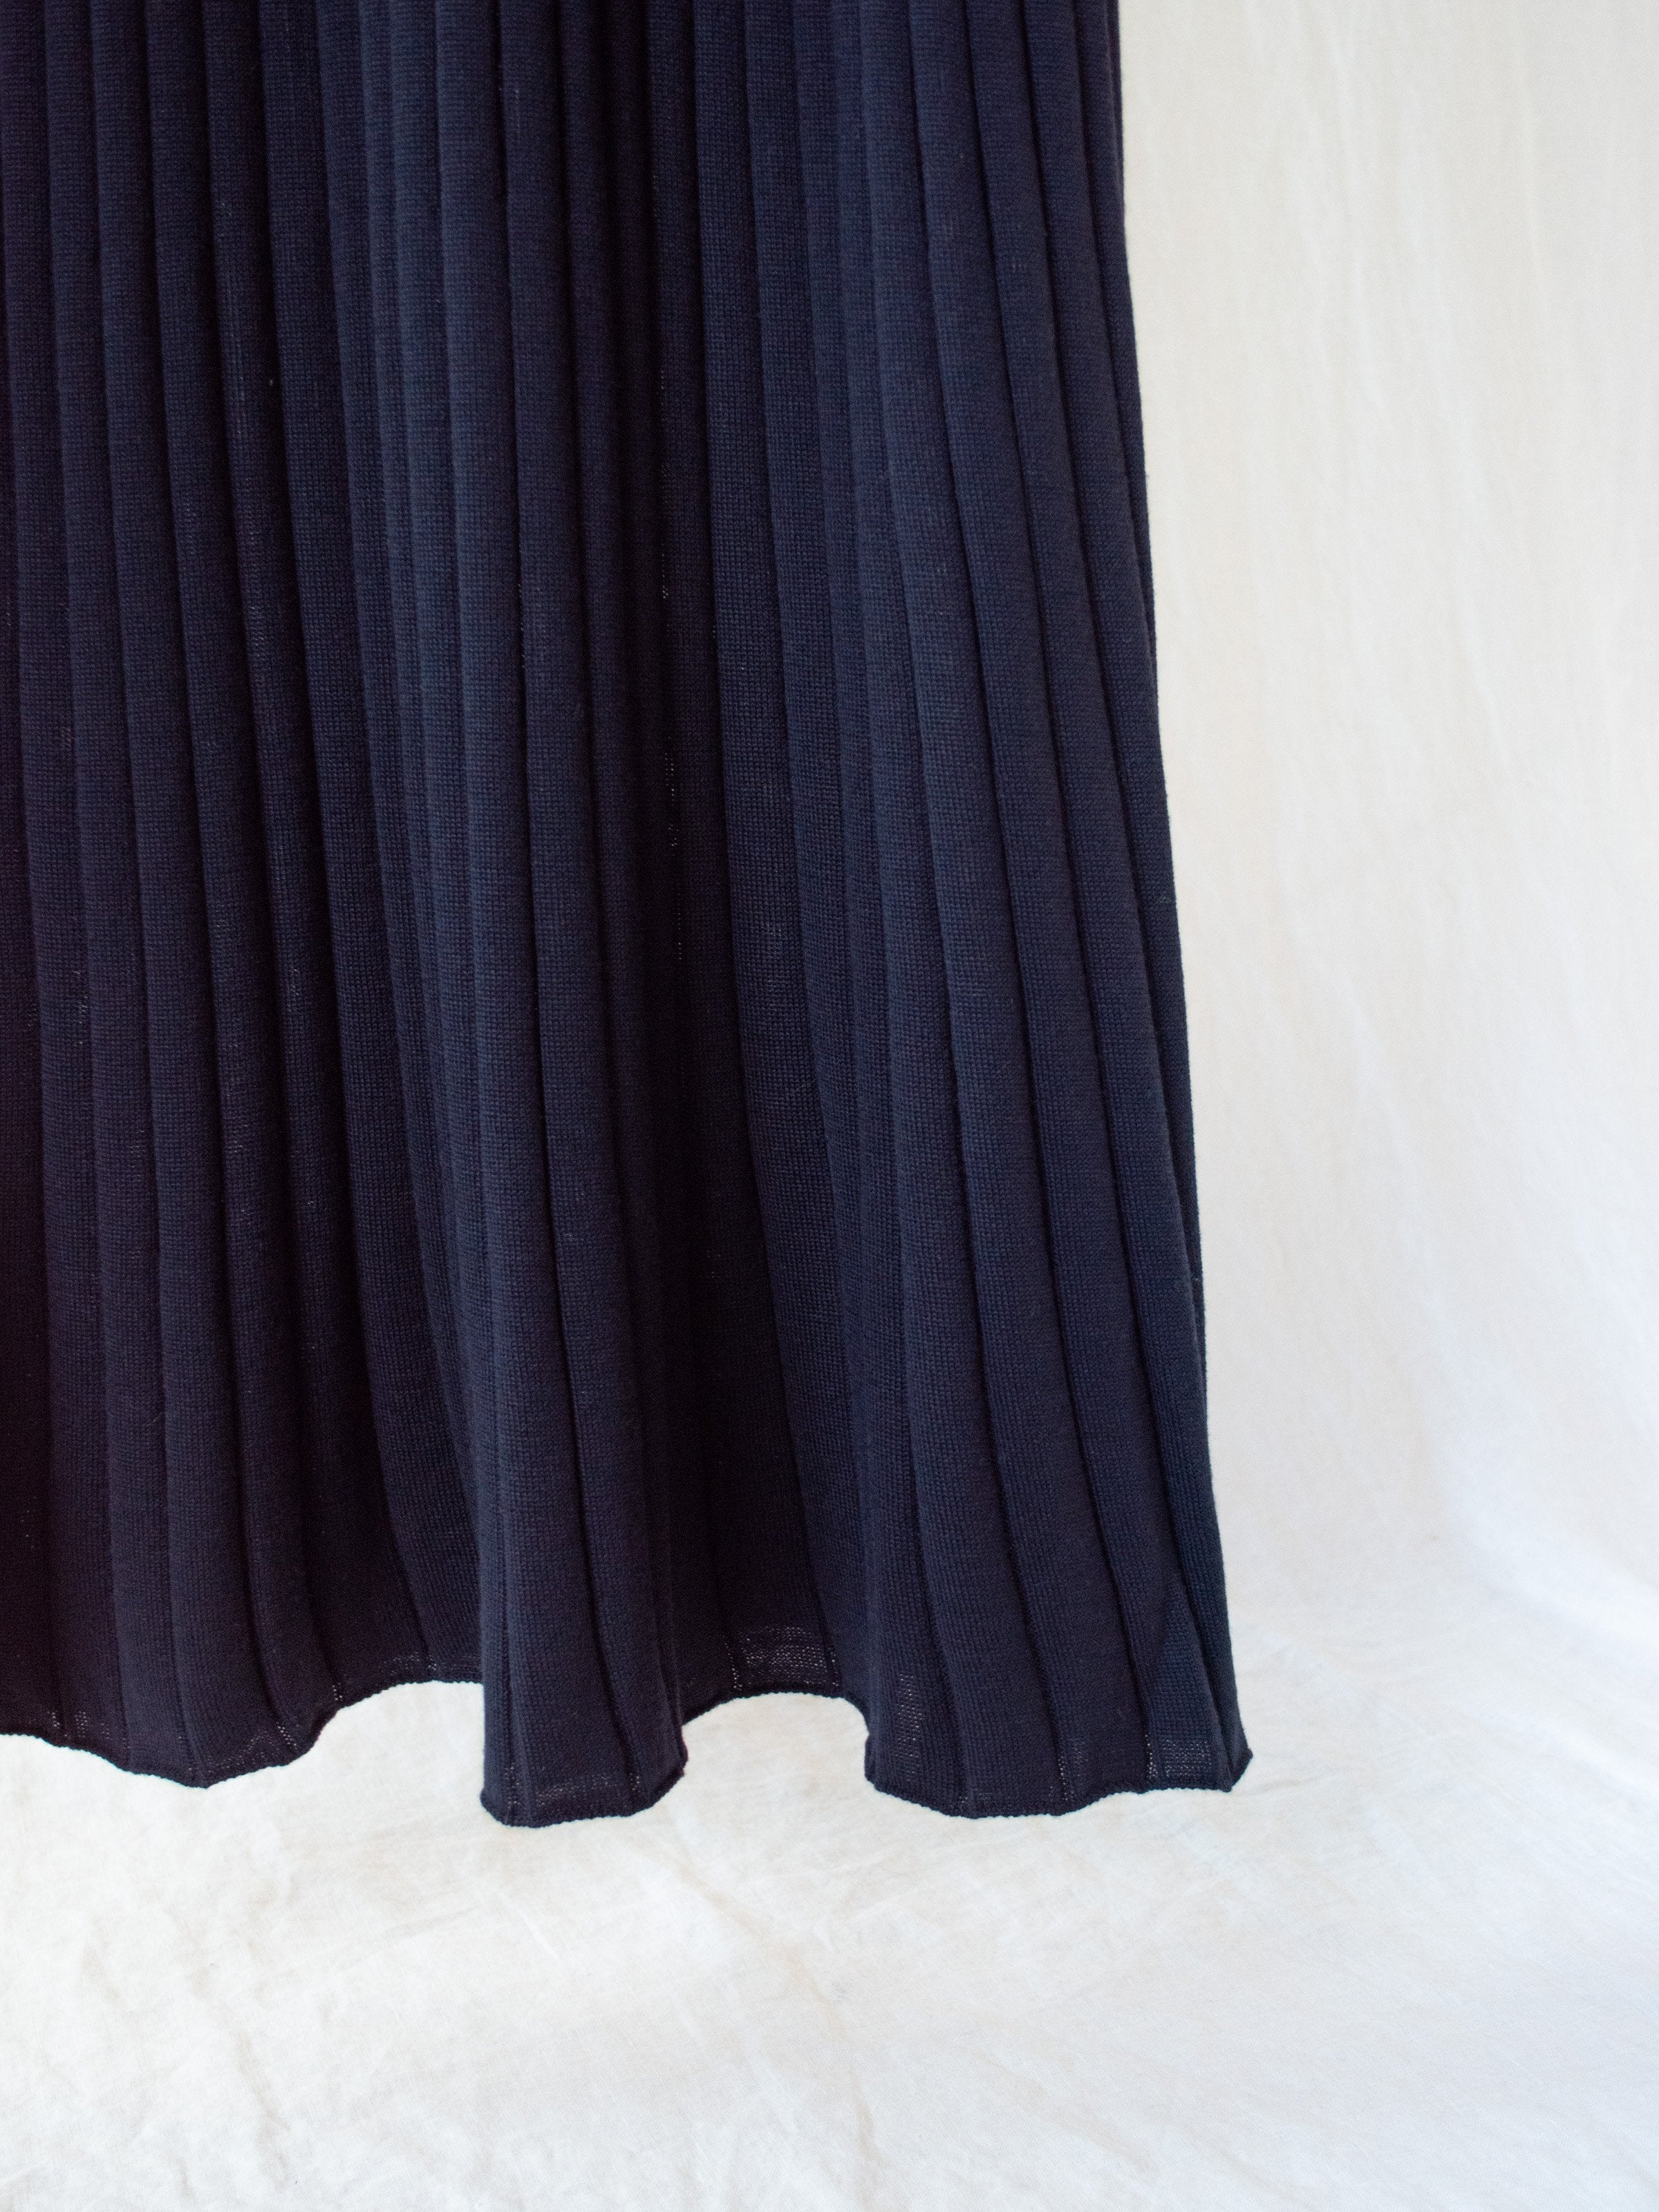 Namu Shop - Phlannel Wool Wide Rib Knit Dress - Navy